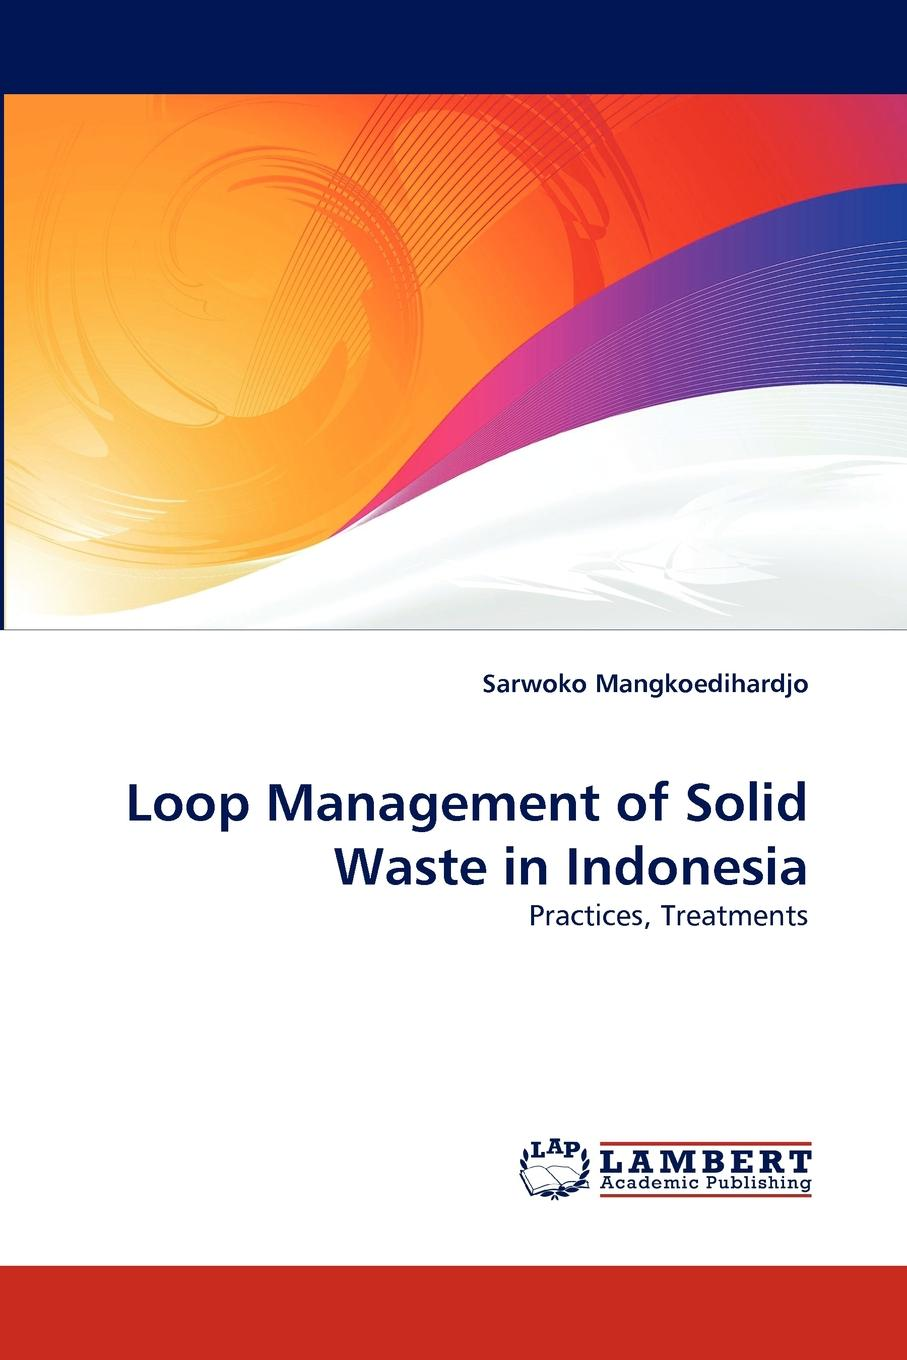 Sarwoko Mangkoedihardjo Loop Management of Solid Waste in Indonesia gary young c municipal solid waste to energy conversion processes economic technical and renewable comparisons